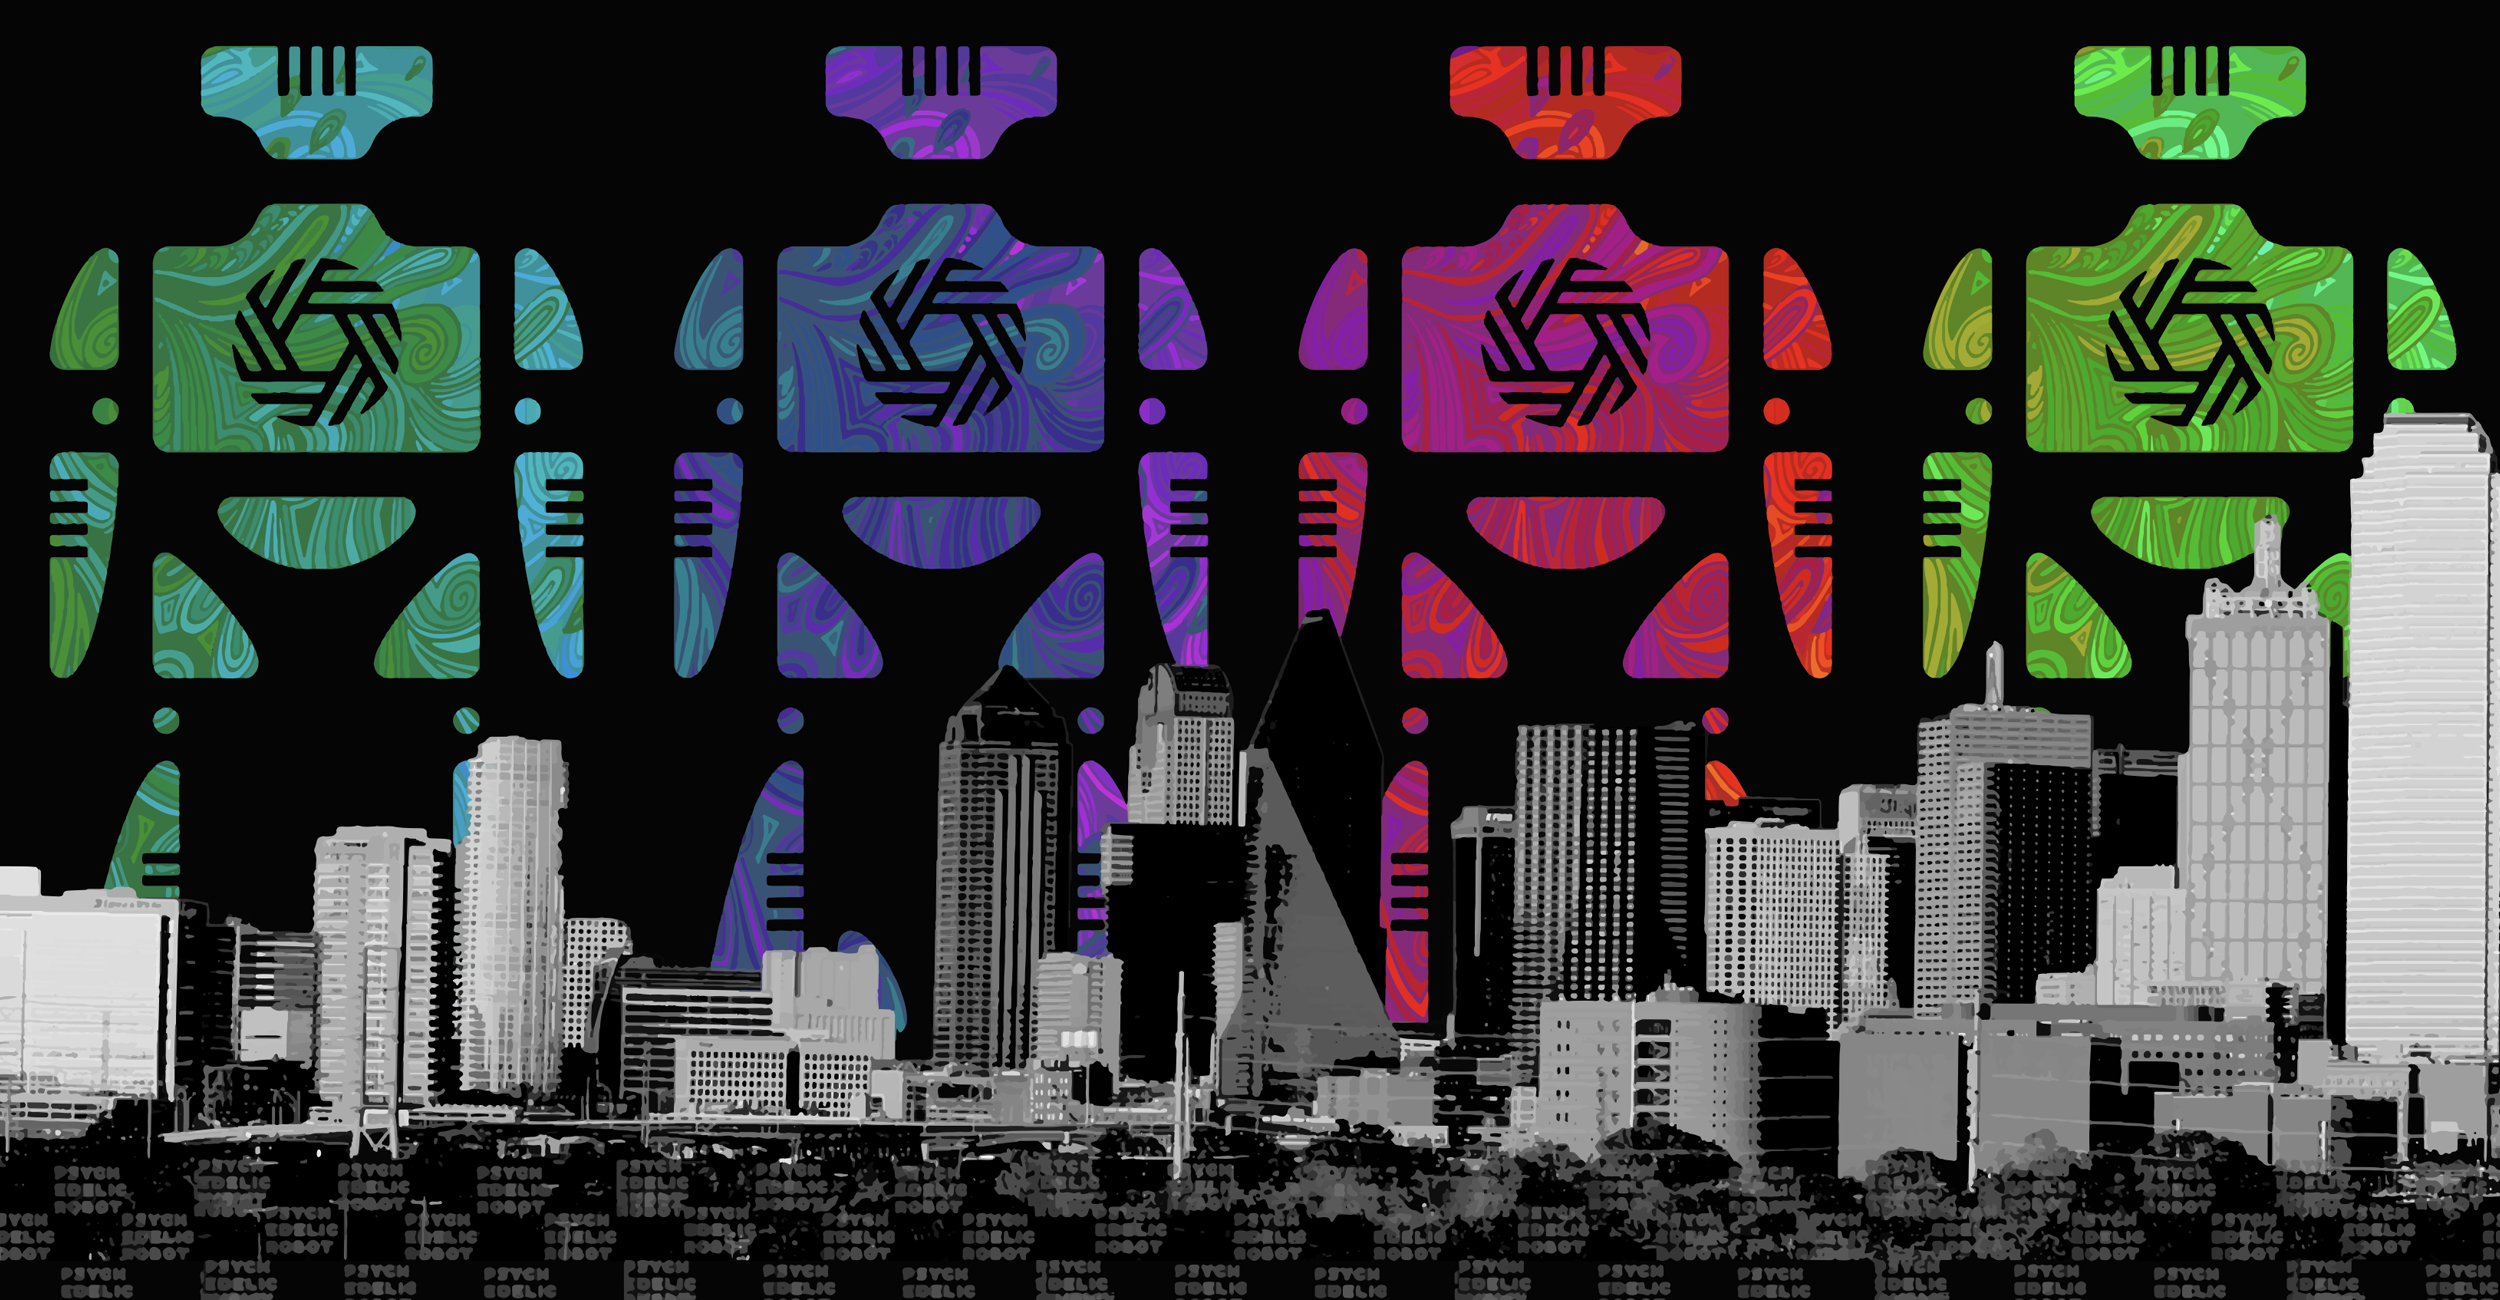 ND-website-graphics-2500-x-1300-PsychedelicRobot.cityscape.2018.jpg